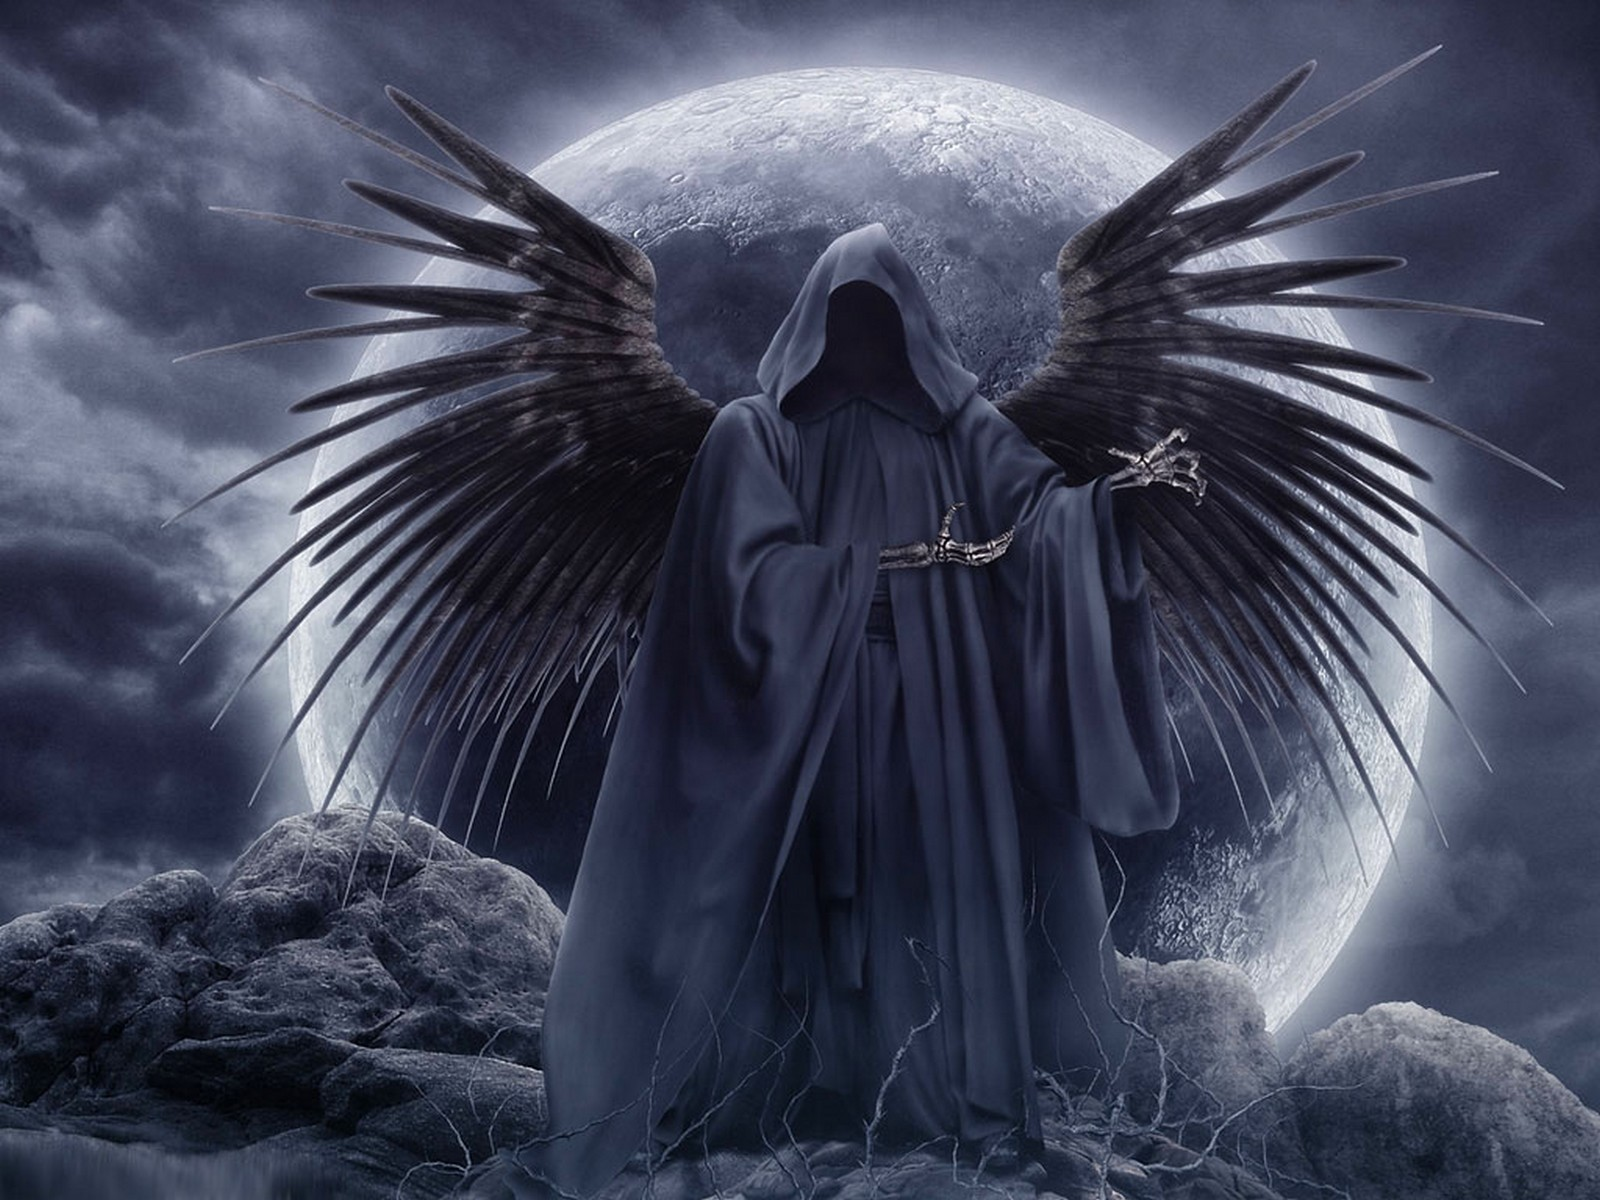 http://4.bp.blogspot.com/-RE6UD_7HbBo/TosxSTlOn2I/AAAAAAAABe0/1j6Ry-2PUSQ/s1600/Lord+Death+Angel.jpg